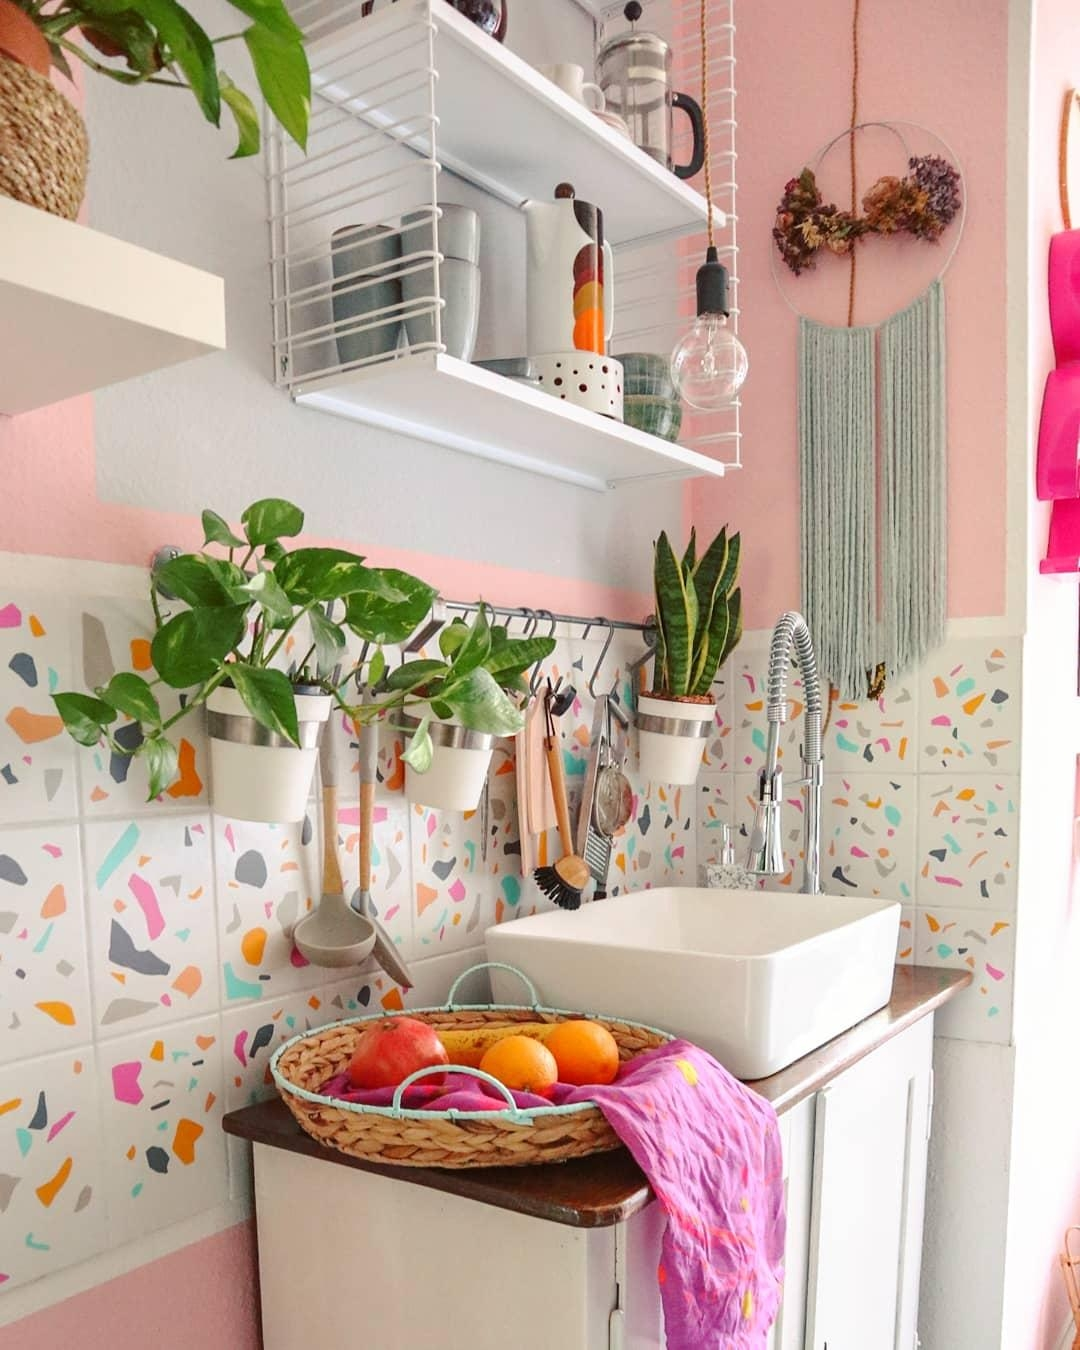 #colorful #kitchen #tiles